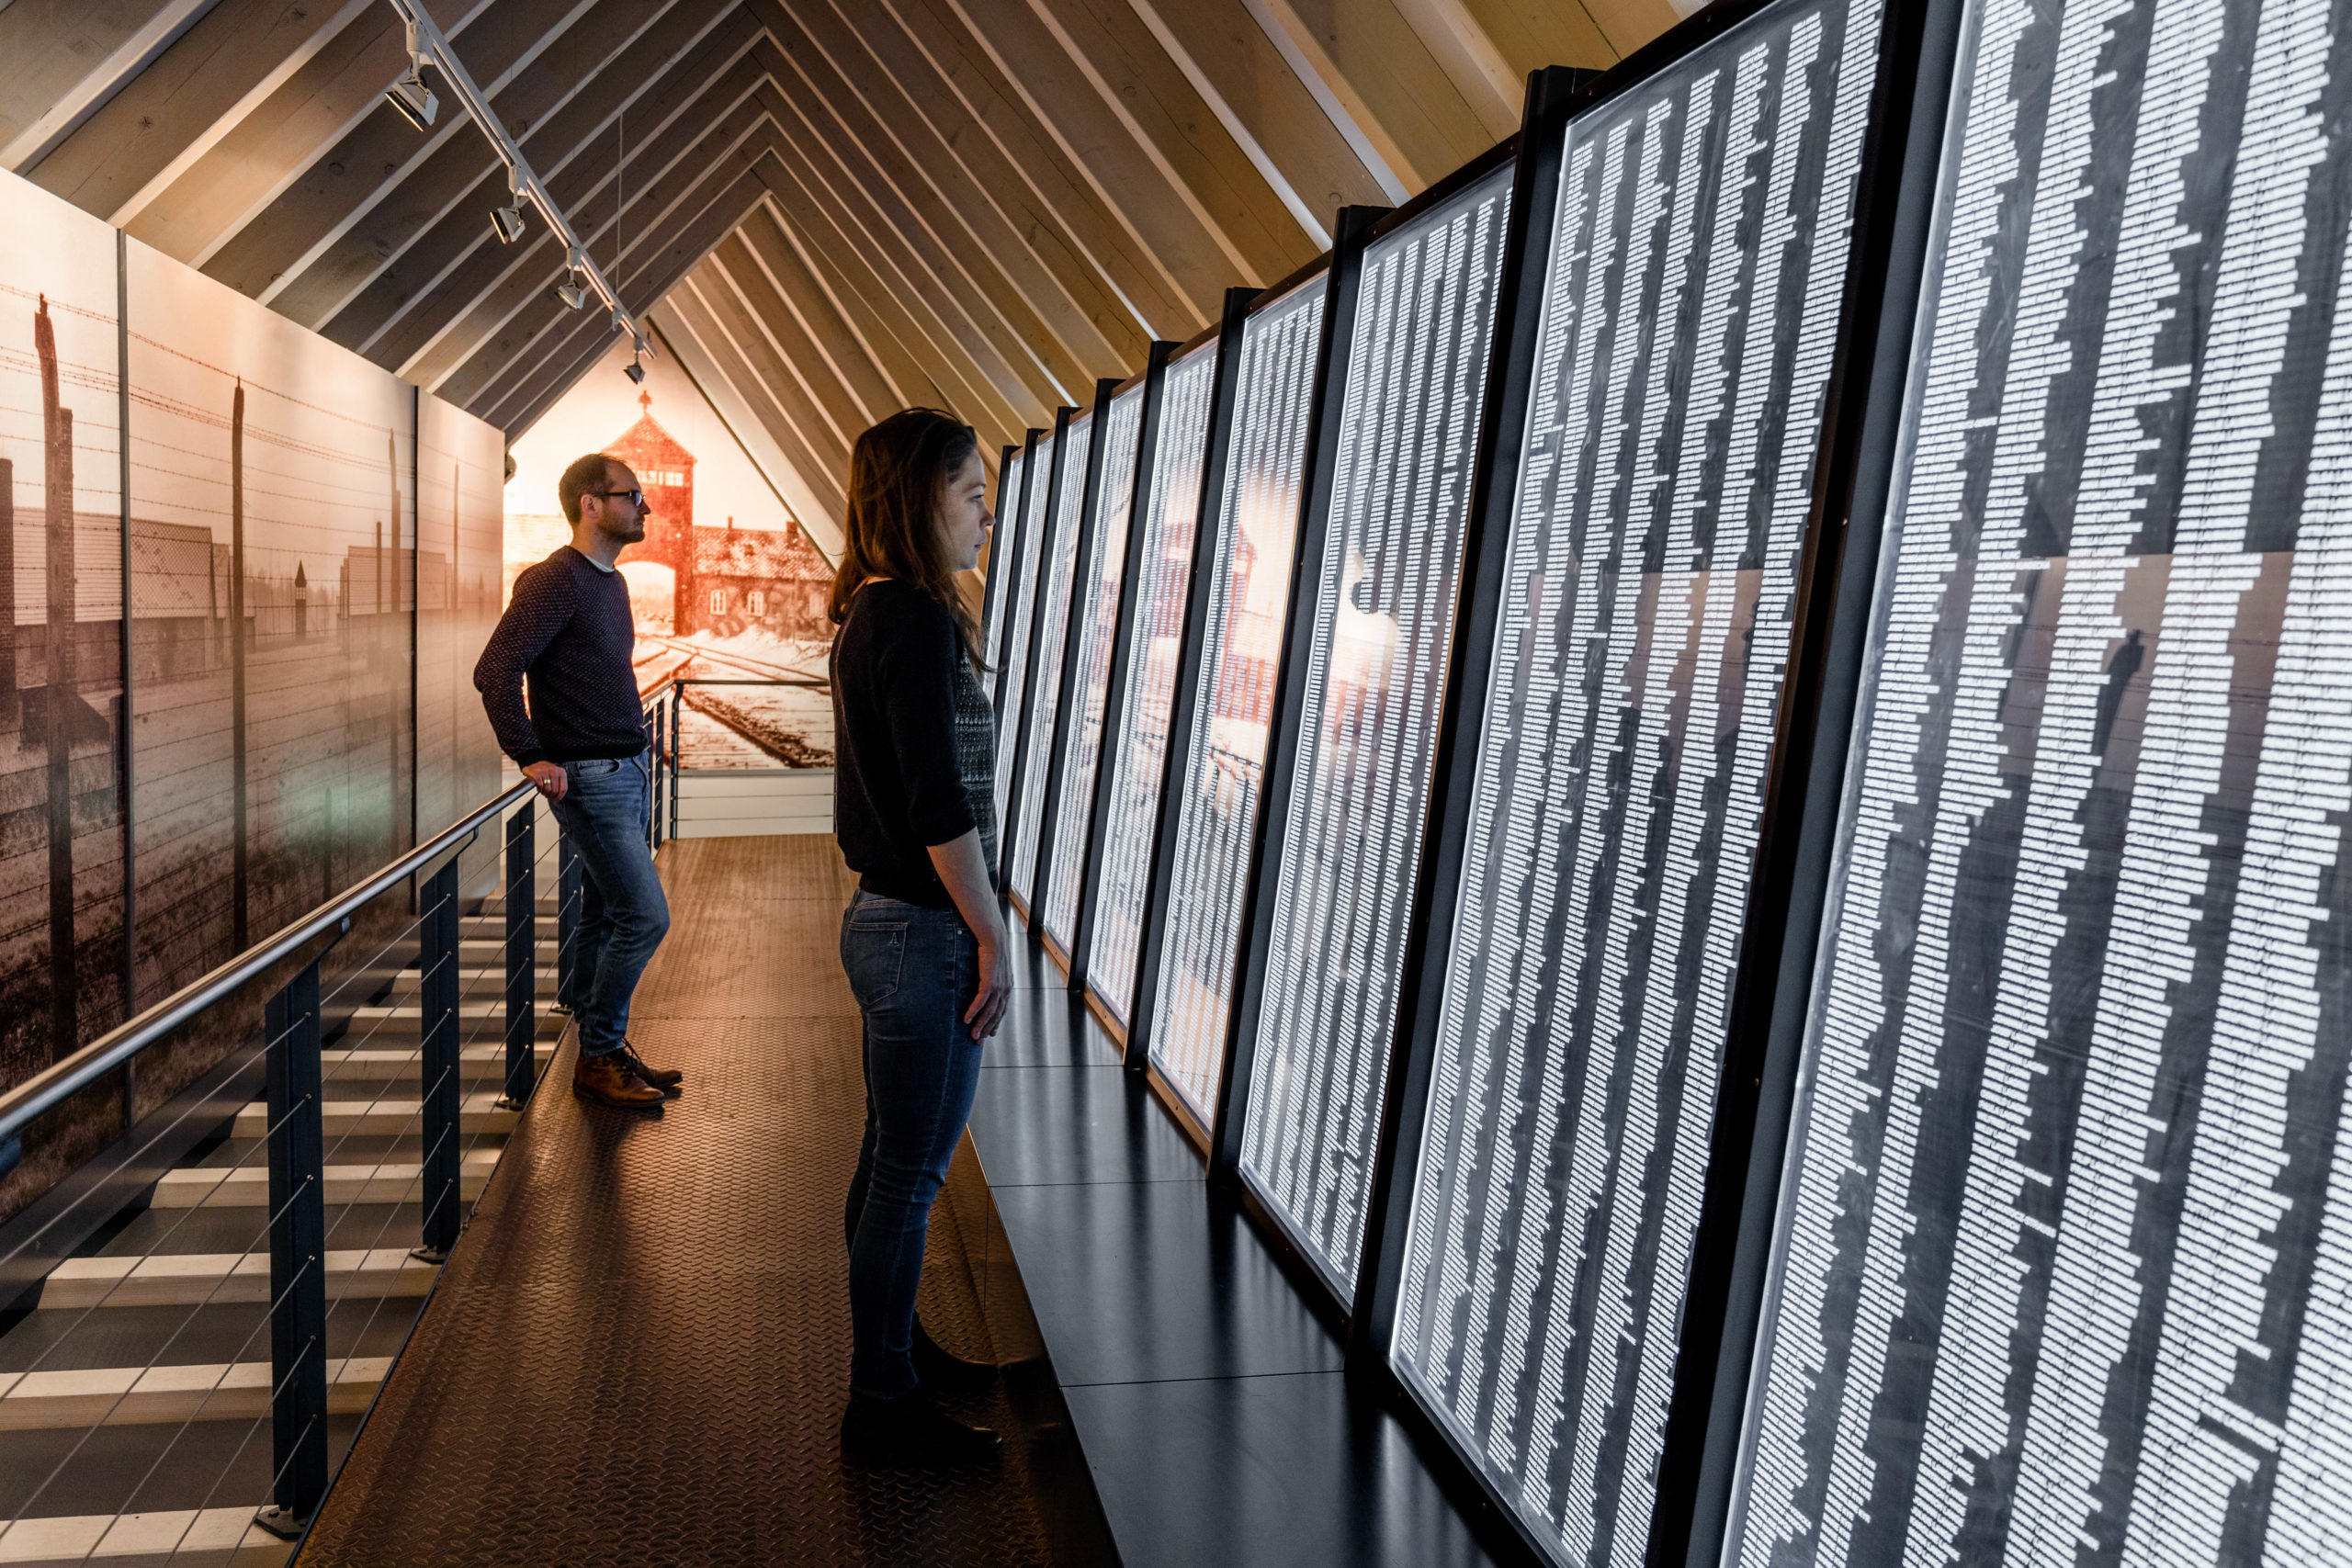 The last part of the permanent exhibition in Heidelberg. The tour ends on a walkway with a wall displaying the names of the more than 21.000 Sinti and Roma who were deported to Auschwitz-Birkenau, where almost all of them were murdered